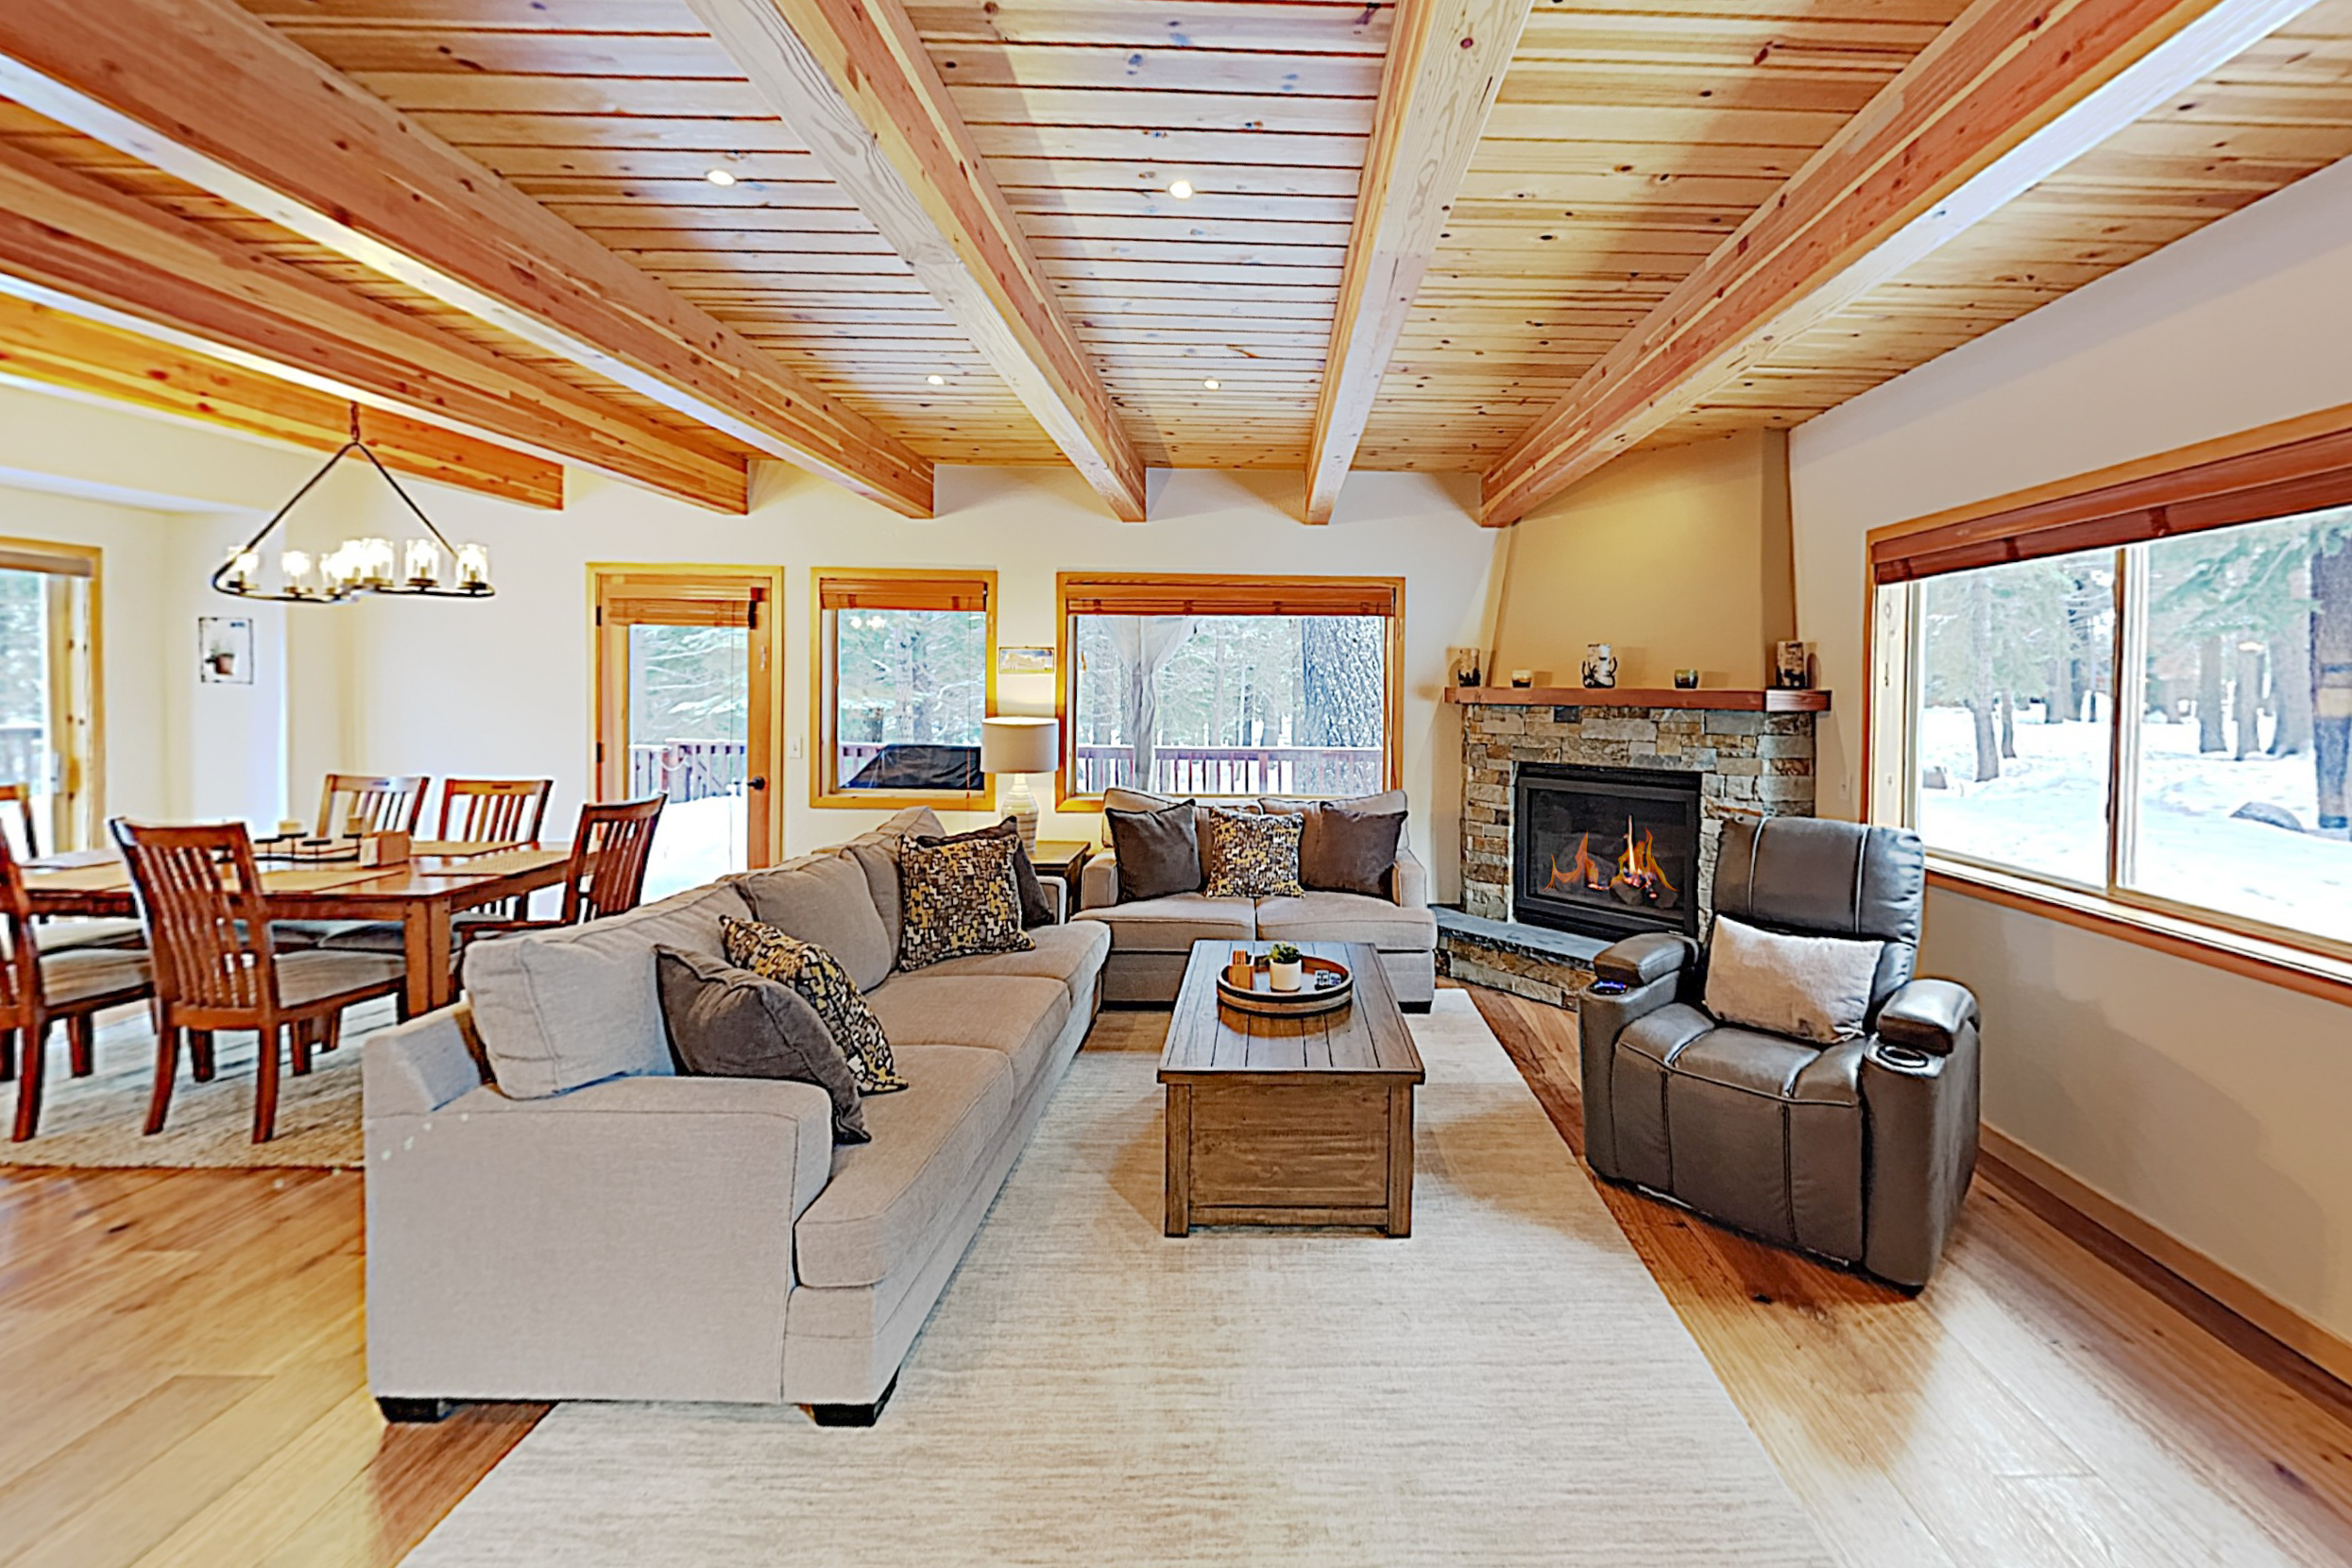 Truckee CA Vacation Rental Welcome to Truckee!